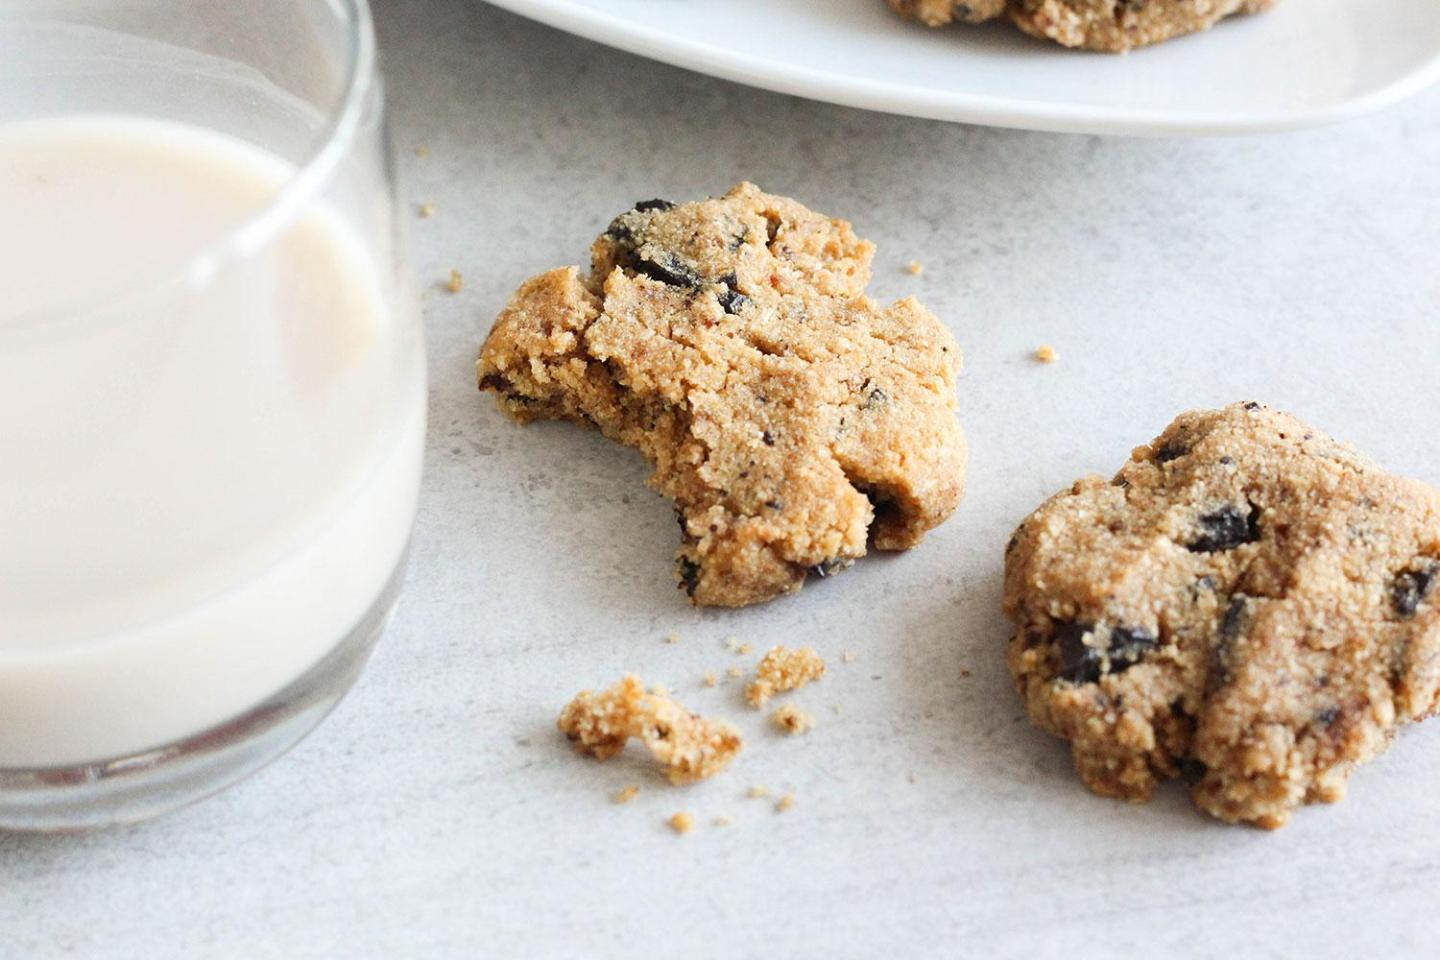 My Healthy Soft Chocolate Chip Cookies Recipe (gluten-free, dairy-free, sugar-free)